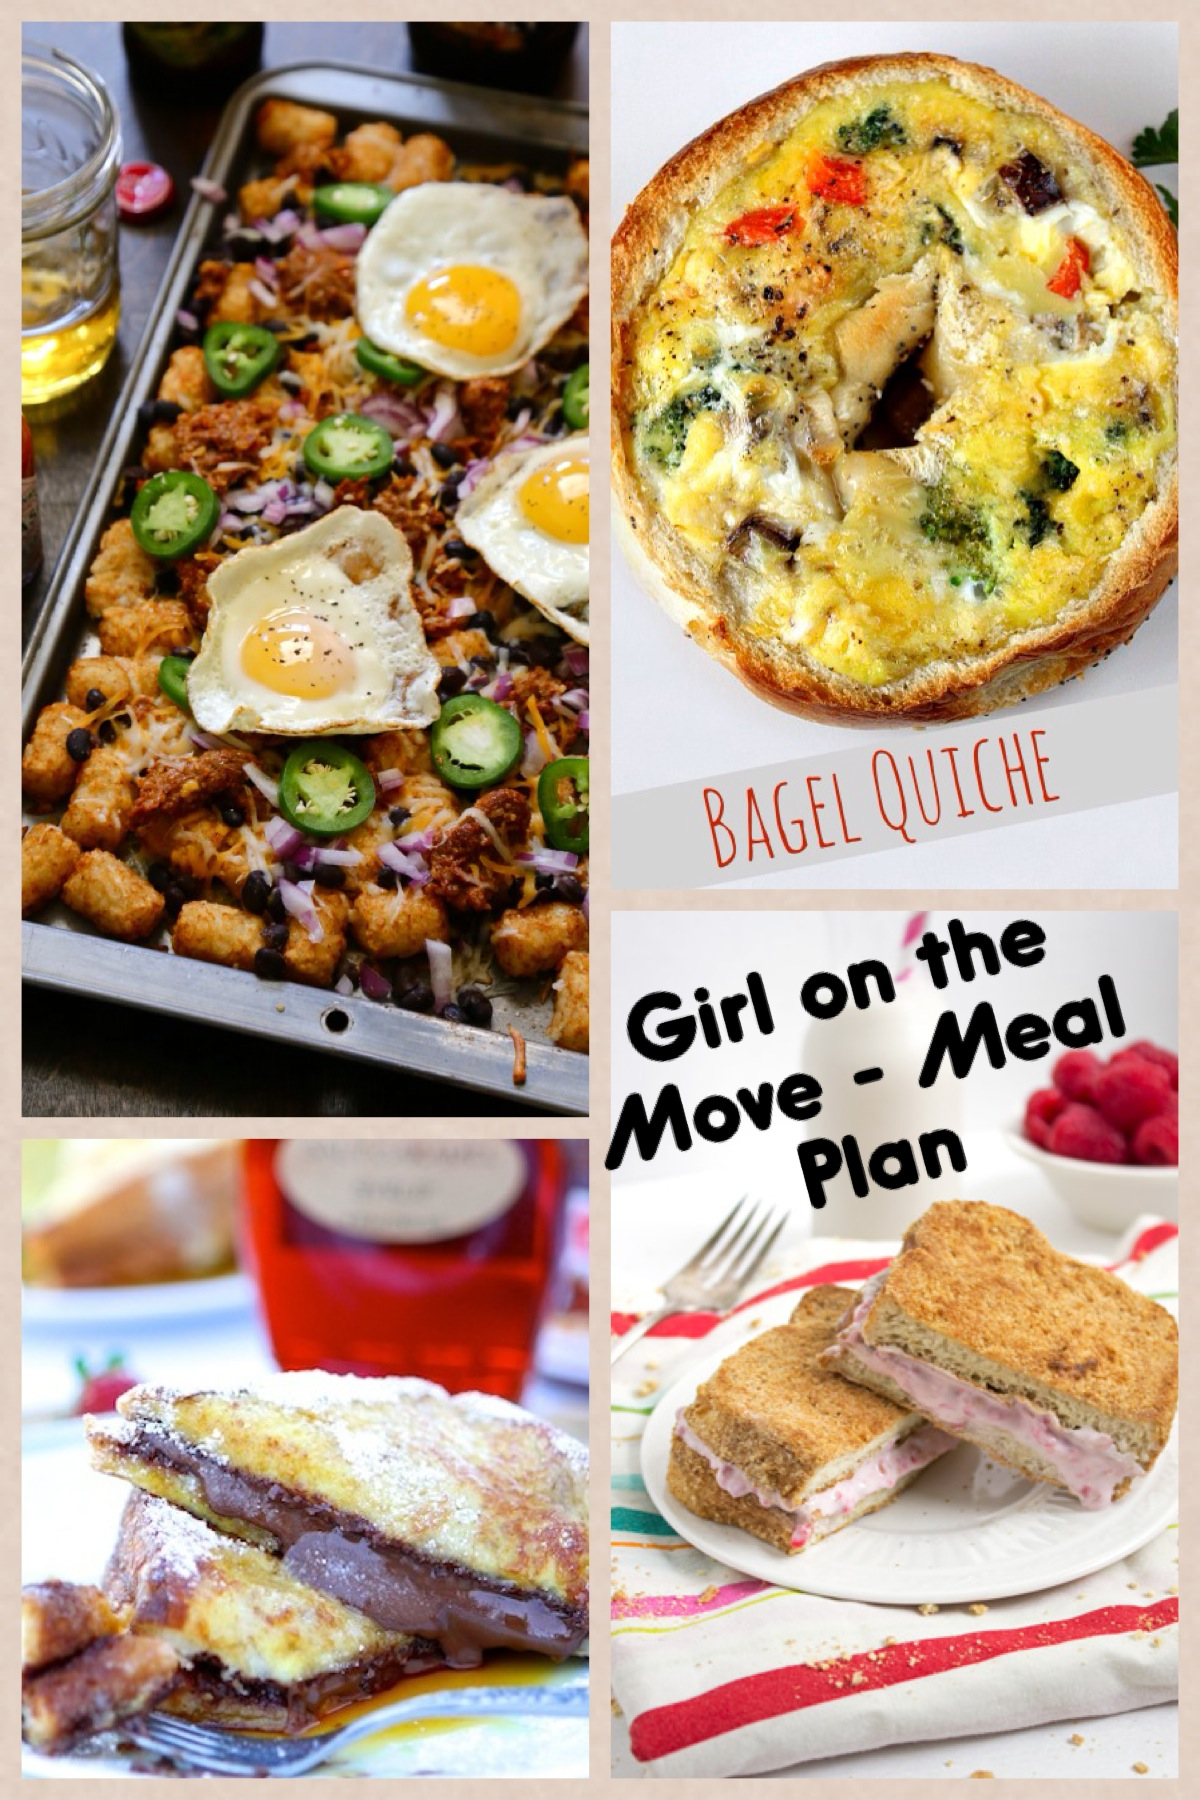 Meal Plan Week 7 | Girl on the Move Blog